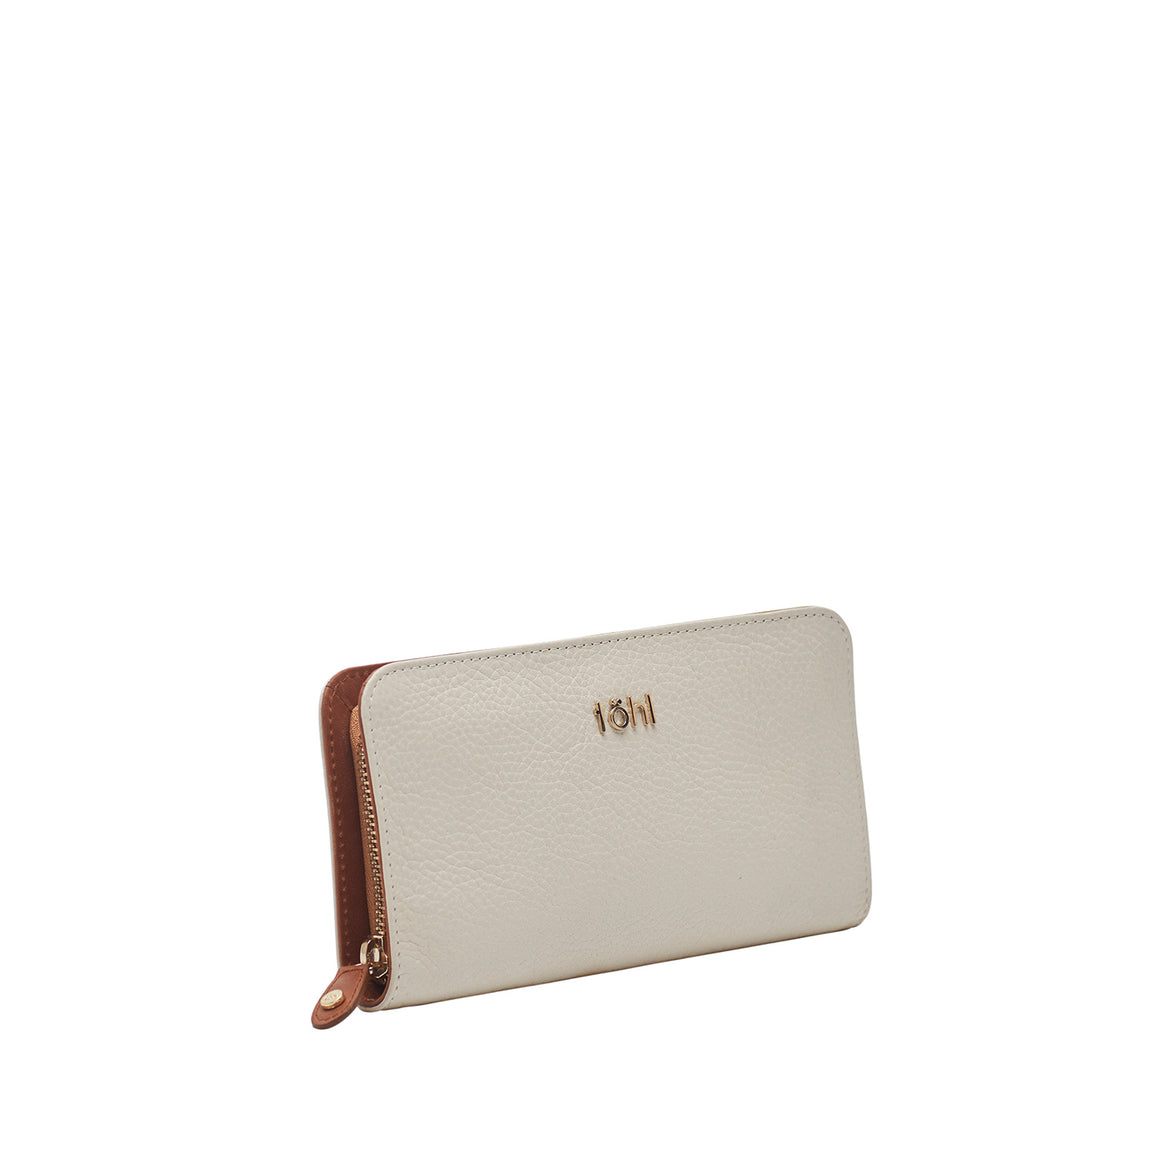 WT 0018 - TOHL BRITTON WOMEN'S WALLET - WHITE